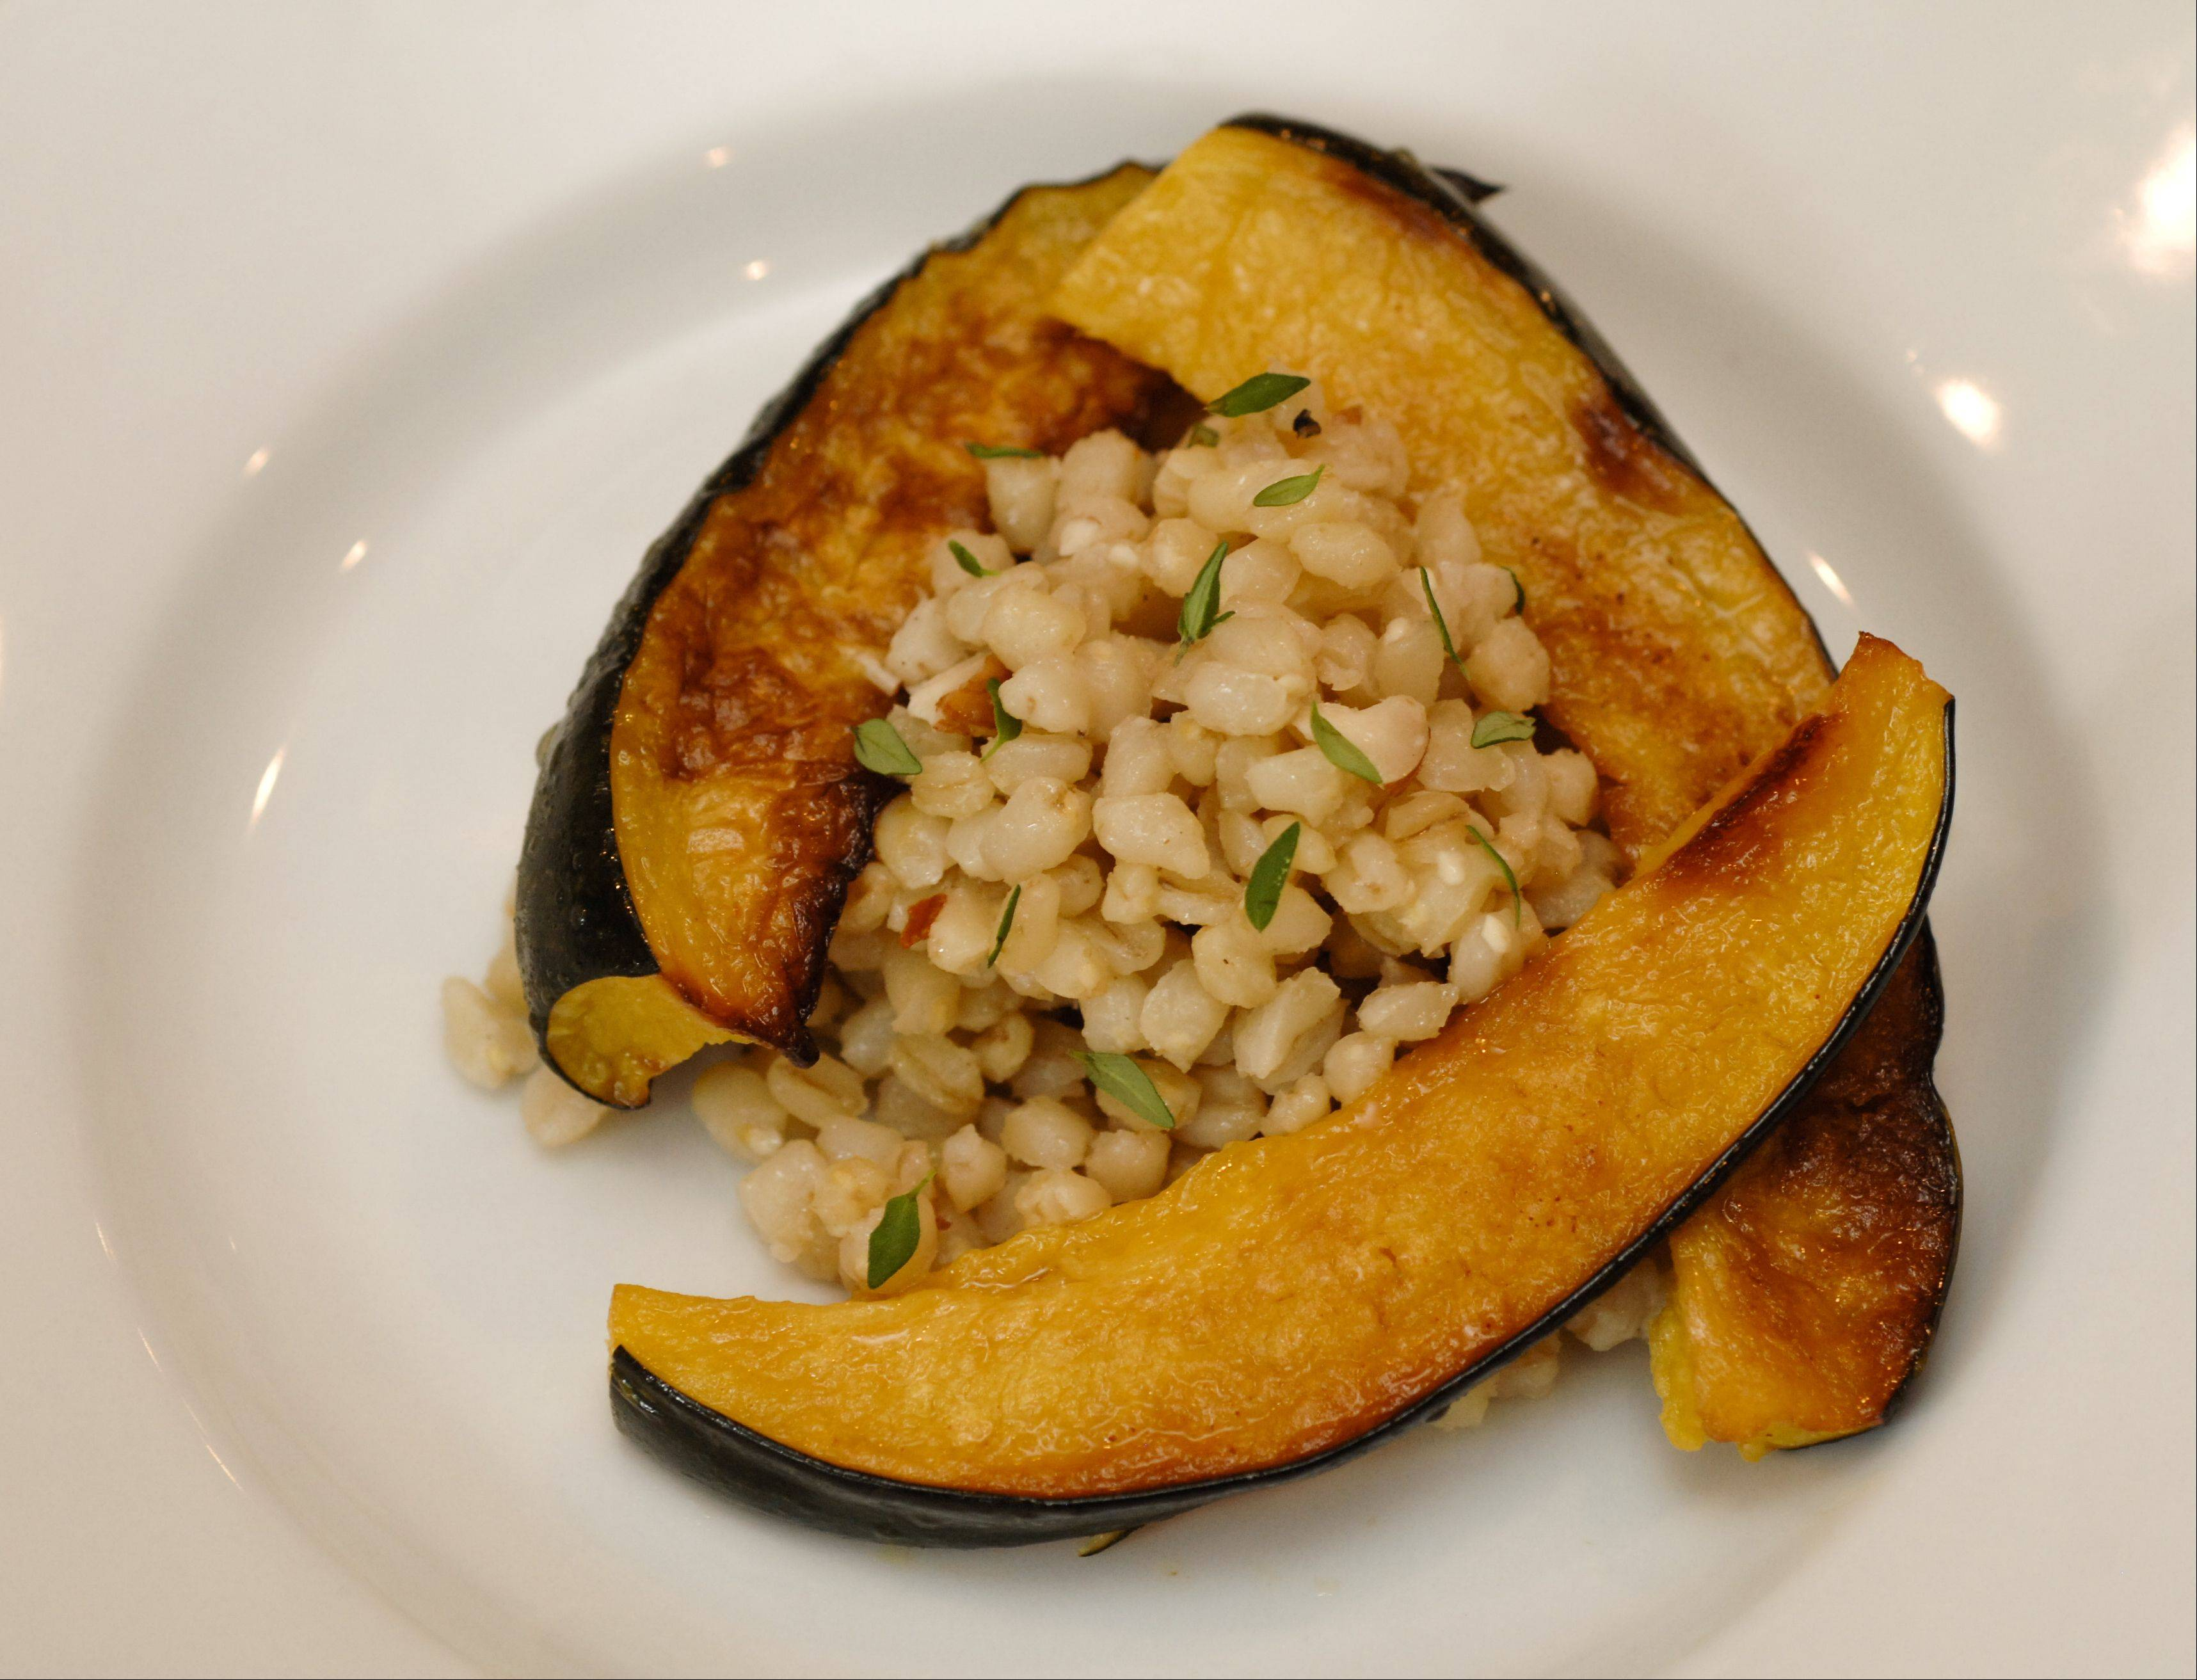 Roasted Acorn Squash, Wheat Berry, with Hazelnut Vinaigrette